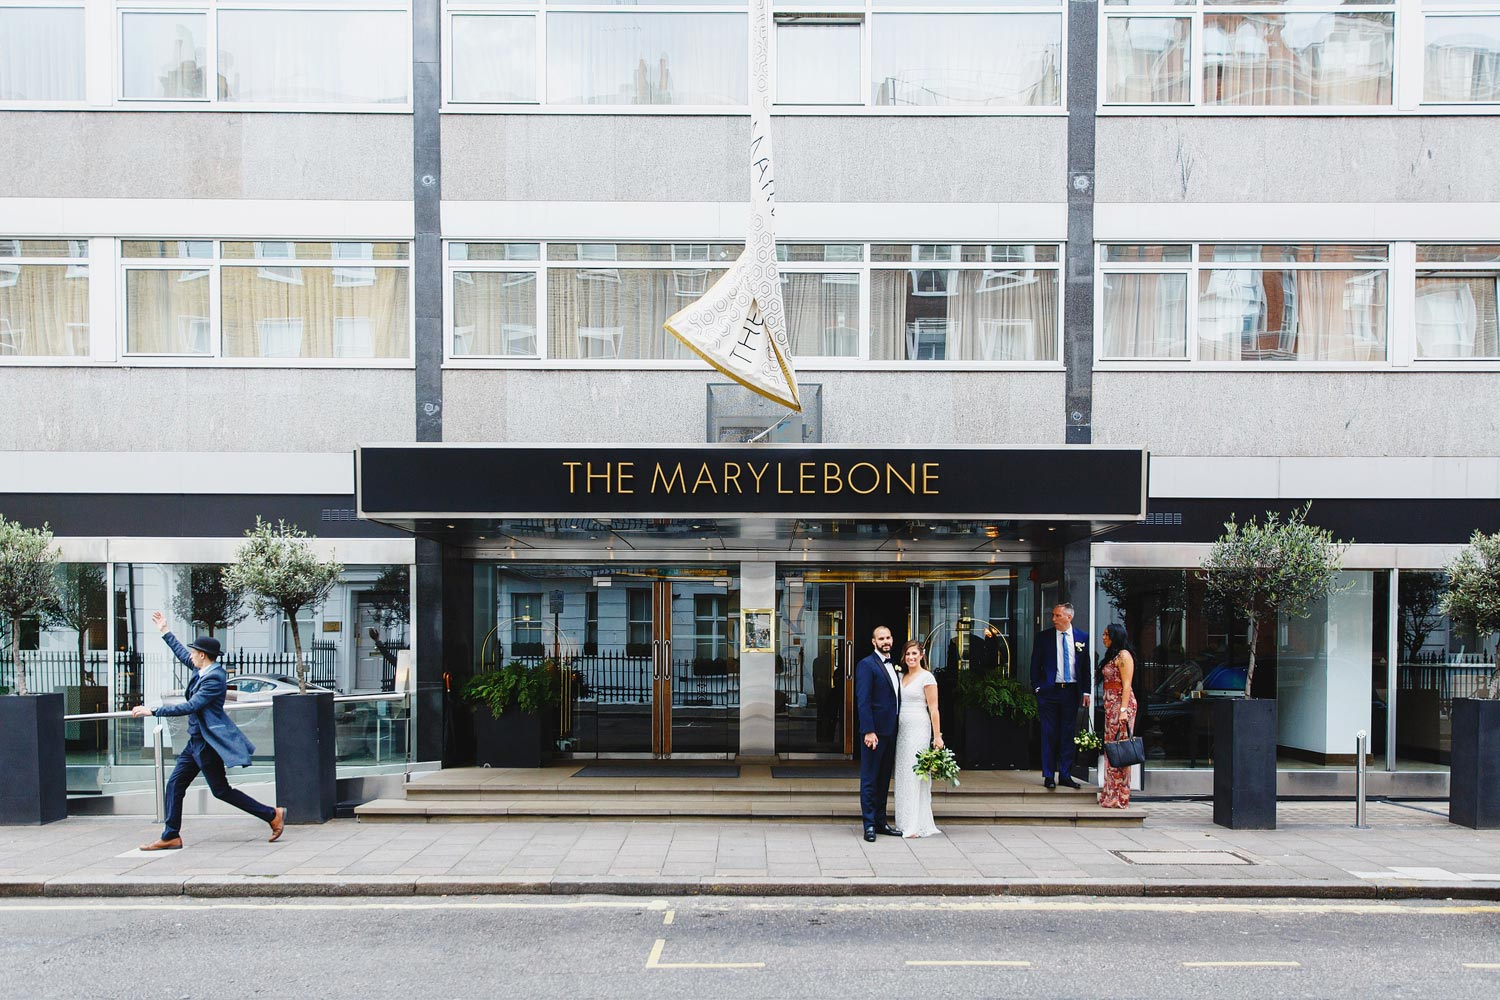 The bride and groom wait for a taxi outside the Marylebone Hotel - London wedding photographer